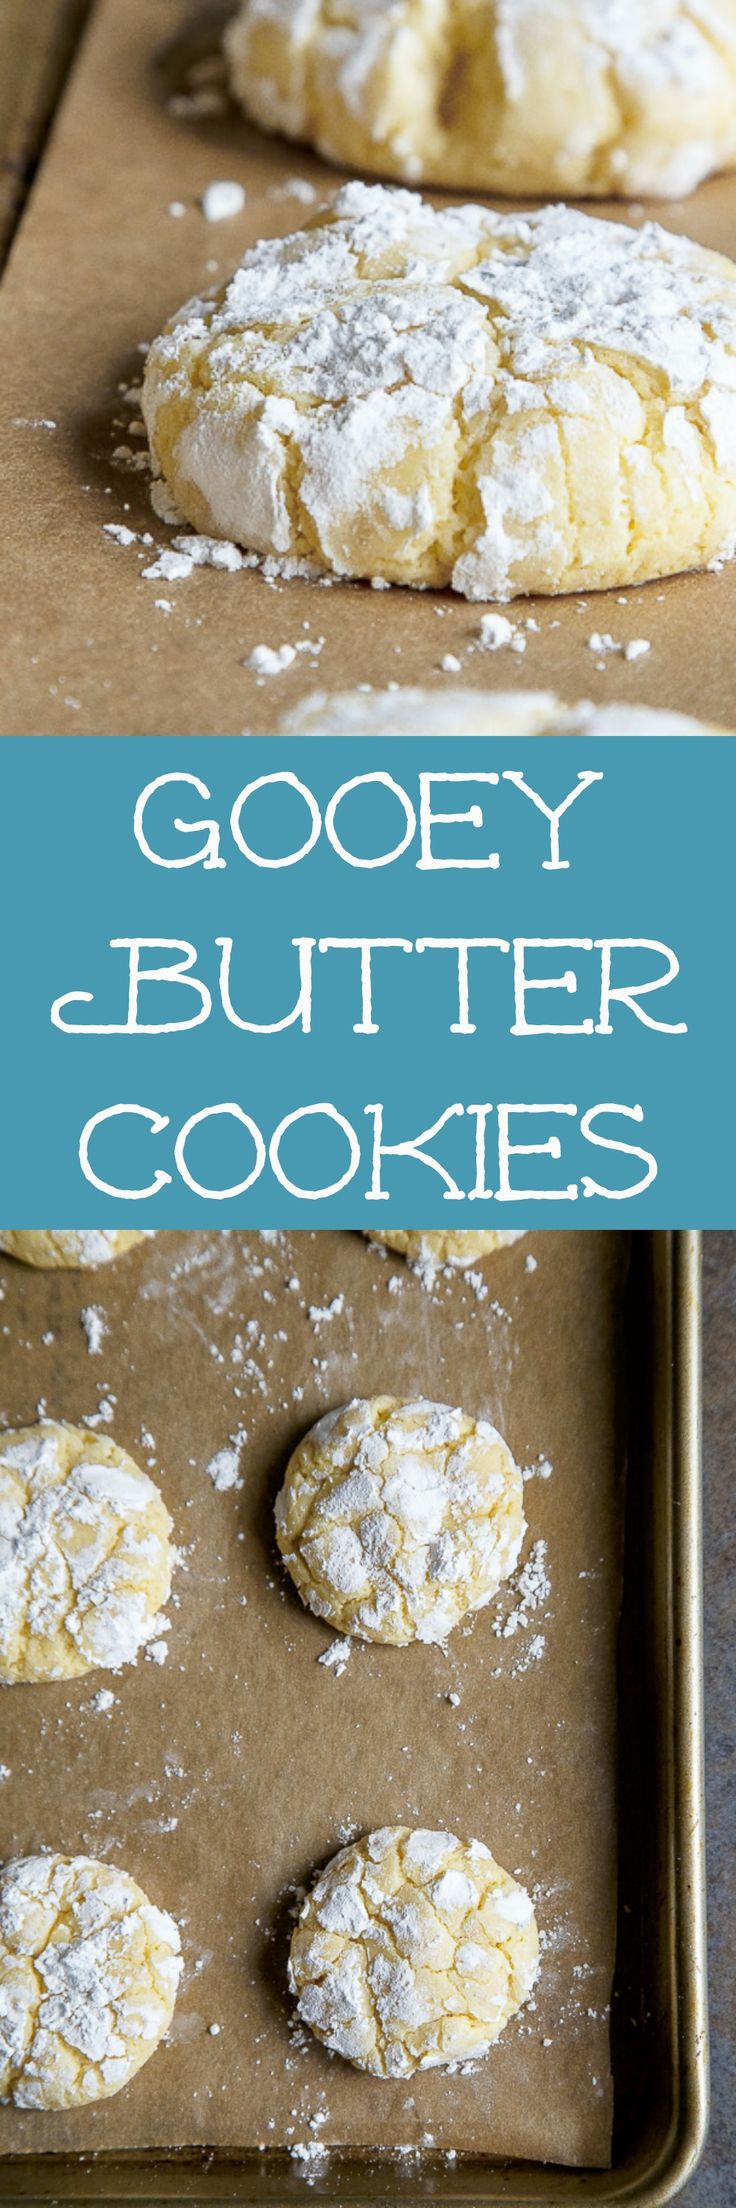 1 dozen gooey butter cake cookies MADE FROM SCRATCH. No cake mix!